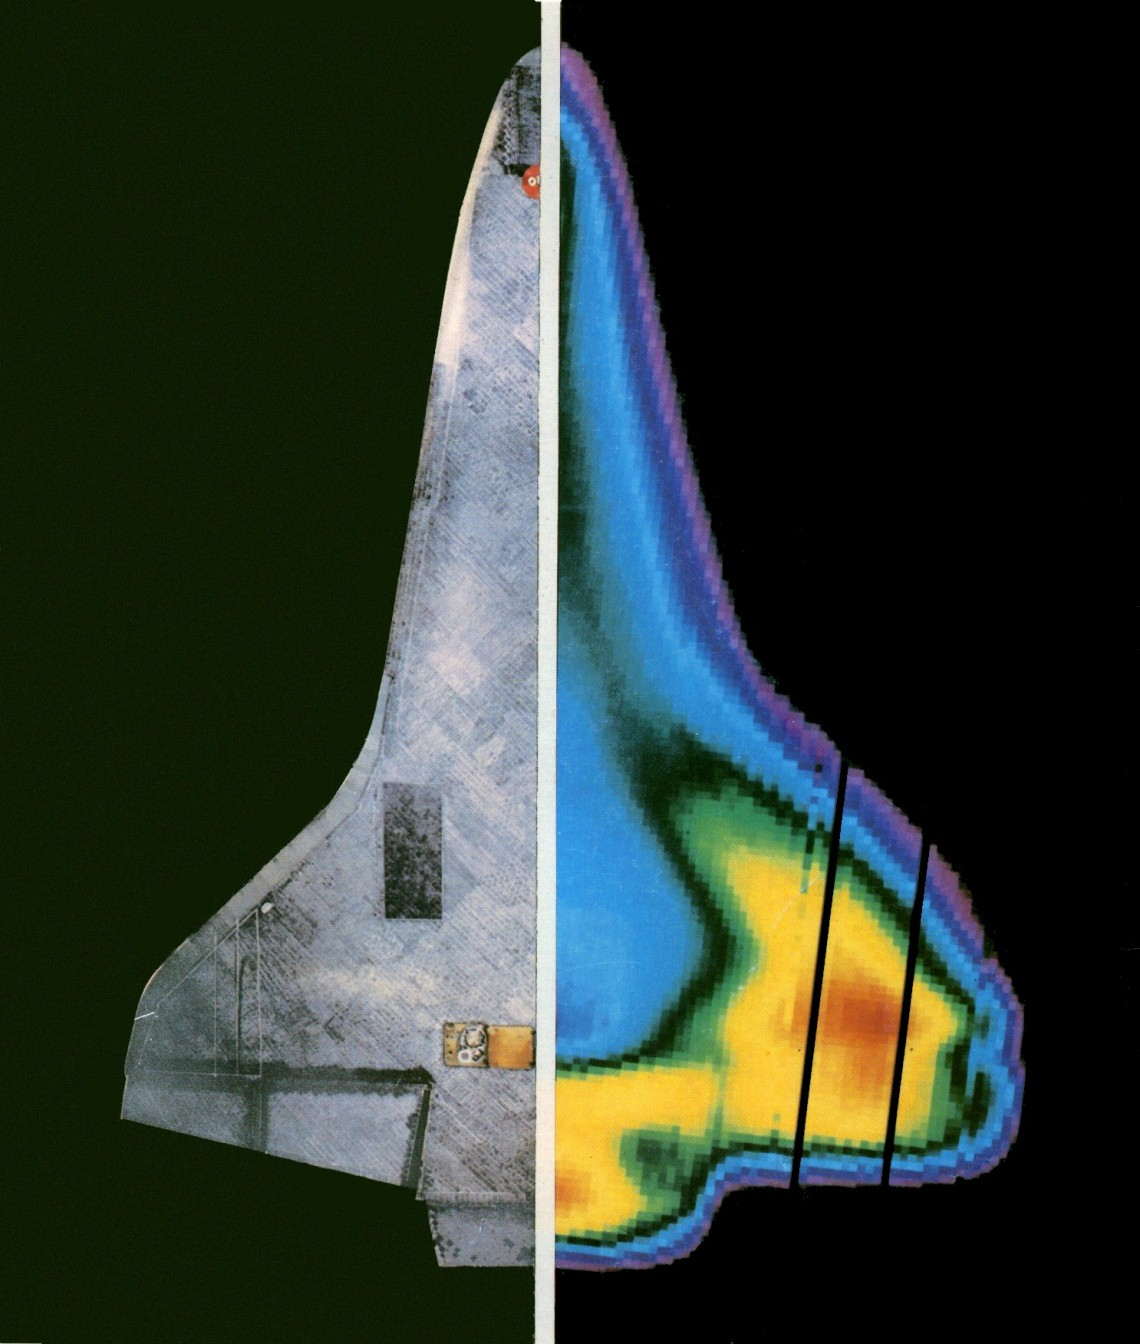 An infrared image of the underside of the Space Shuttle showing variation in temperature during reentry (Photo credit: NASA)